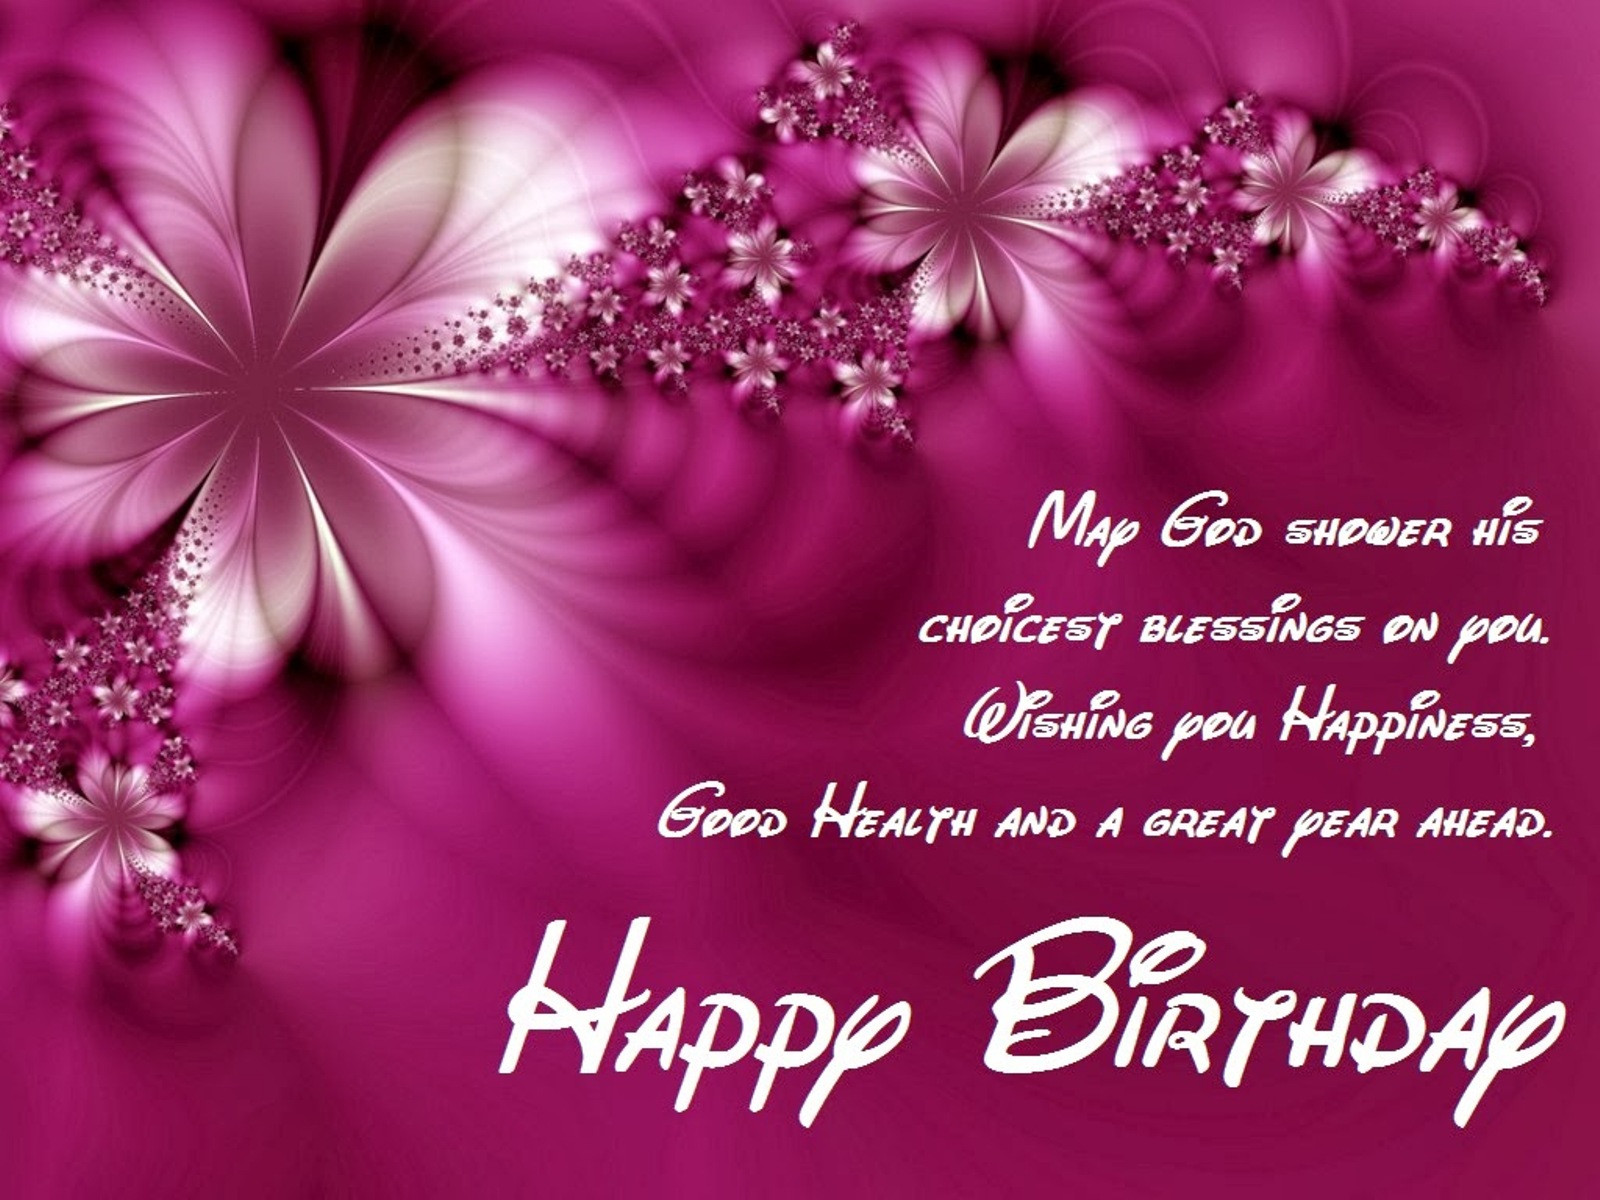 Best ideas about Quotation Birthday Wishes . Save or Pin Happy Birthday Quotes – Happy Birthday Now.